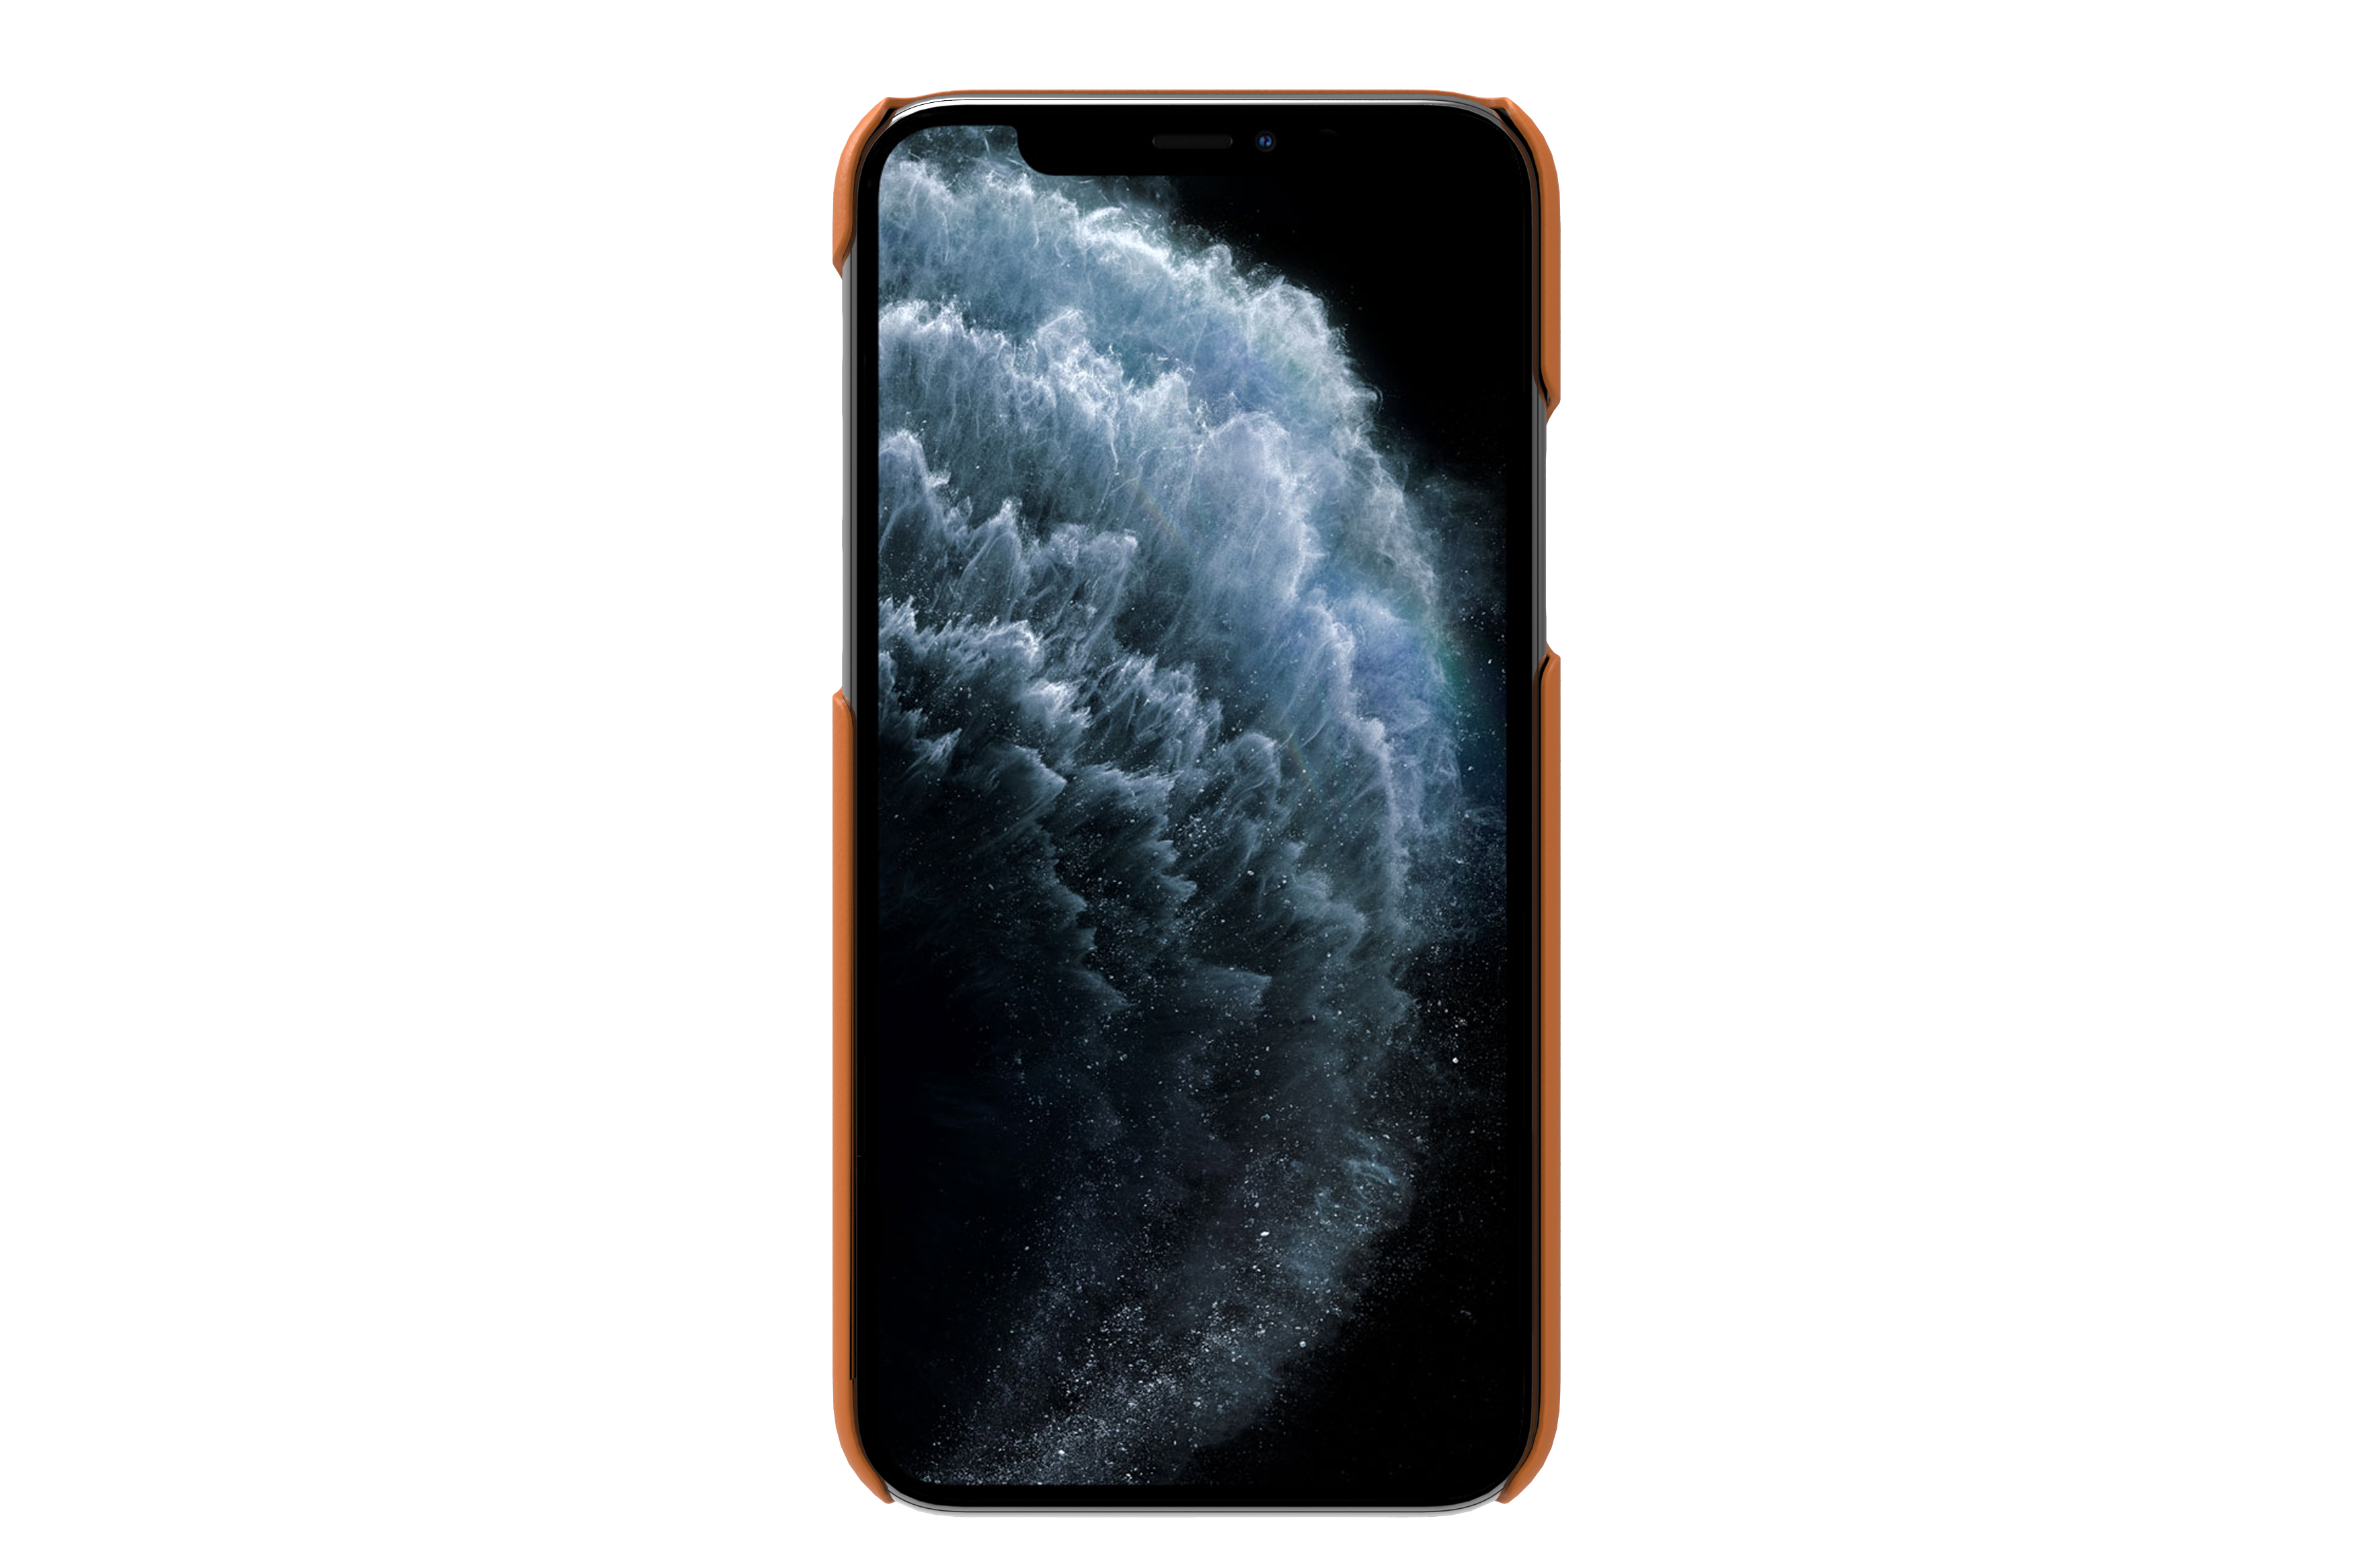 iphone11 pro brown-2